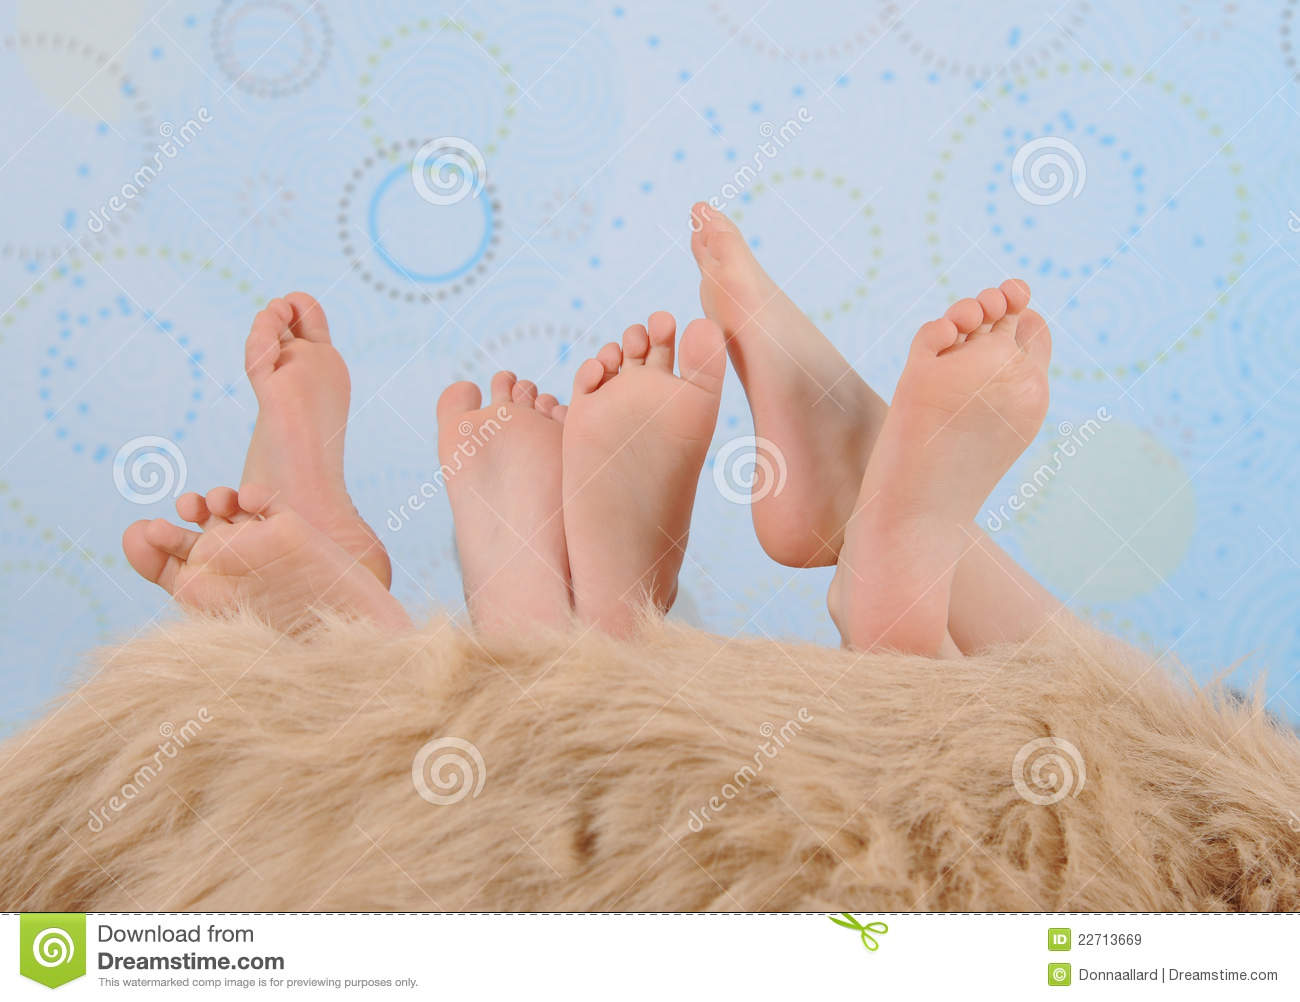 Children S Feet Over Furry Blanket Royalty Free Stock